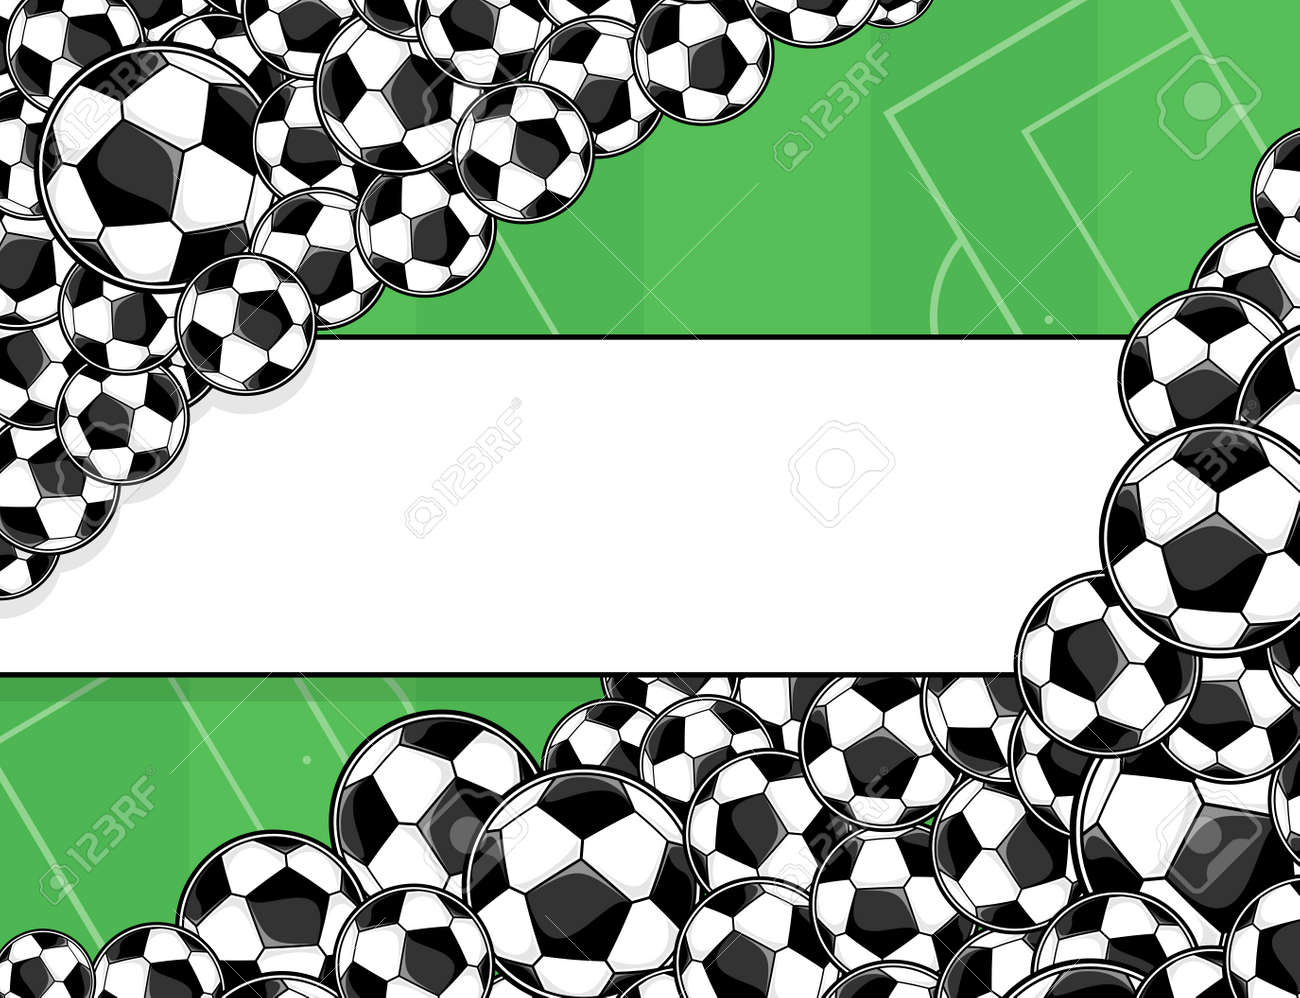 Soccer Balls Border On Green Playing Field Background Royalty Free Cliparts Vectors And Stock Illustration Image 29671948